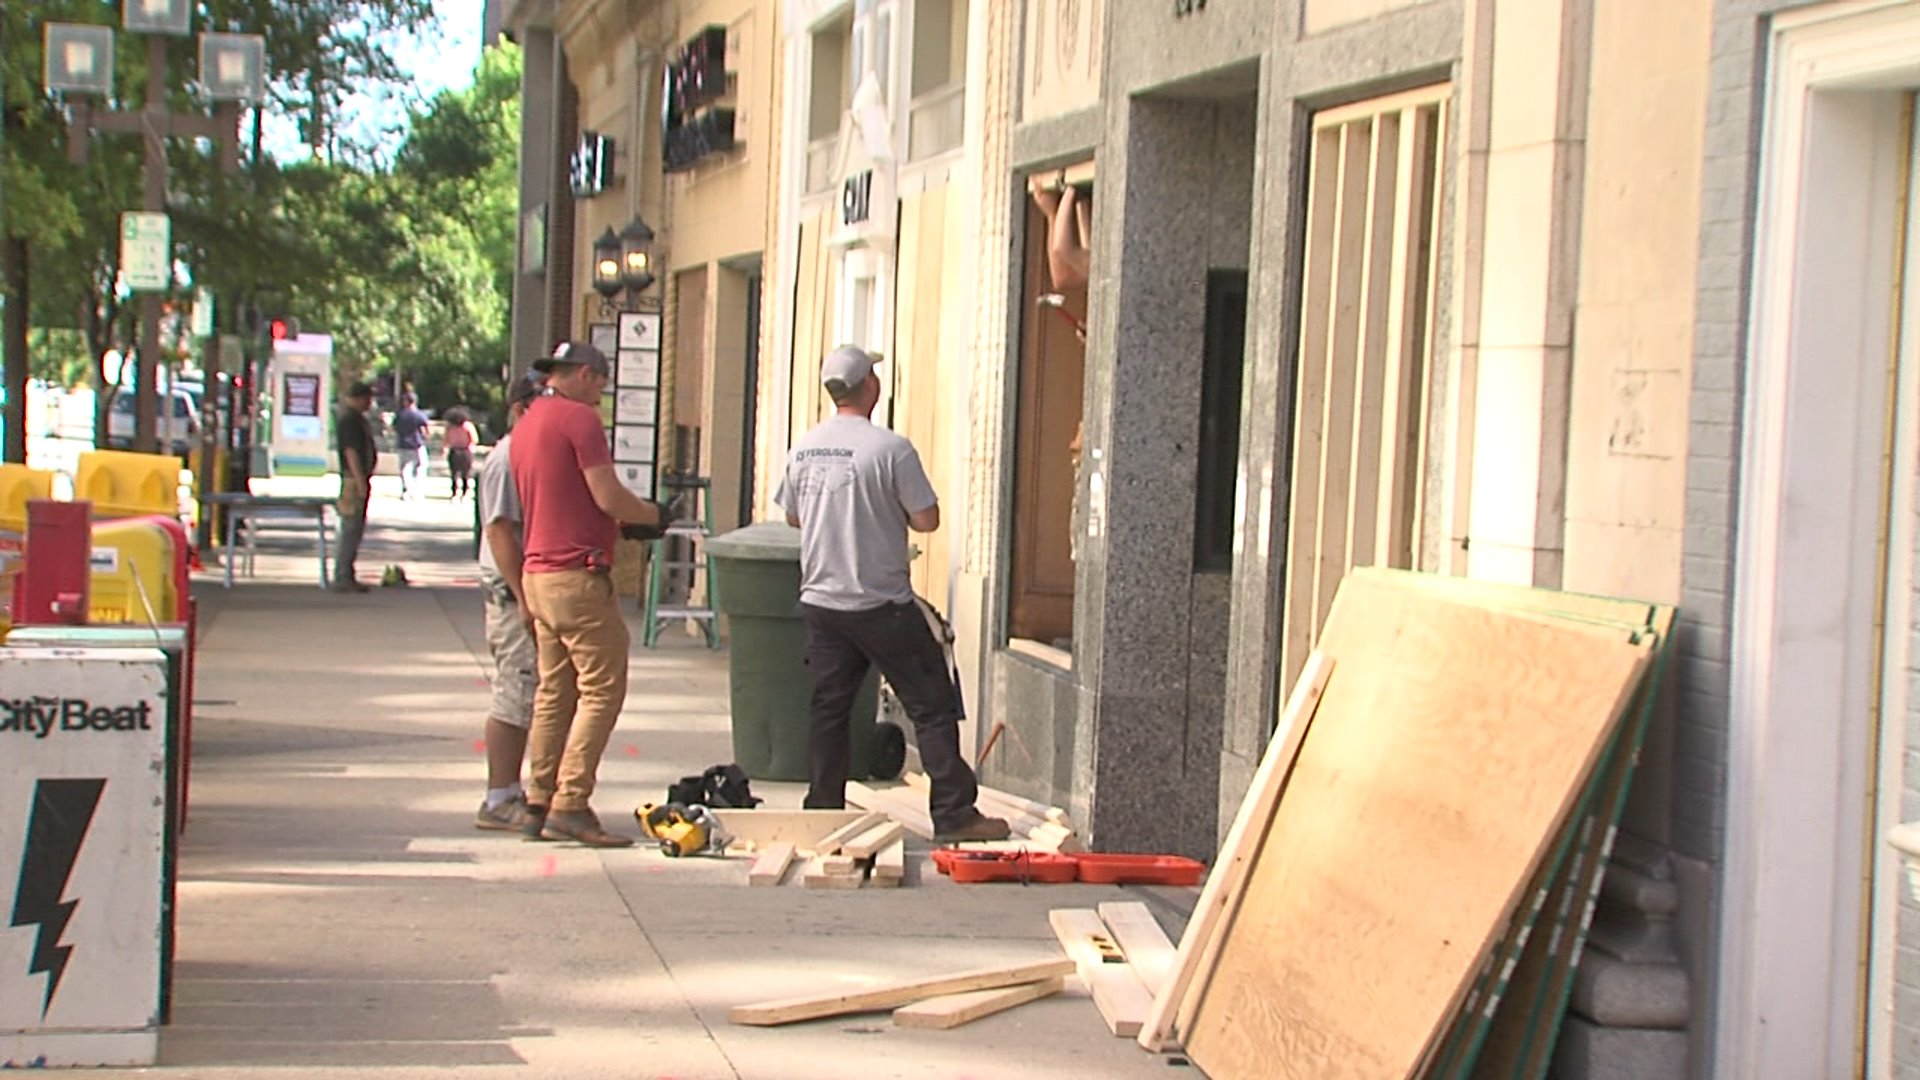 People living and working in downtown Greensboro spent another morning cleaning up glass, debris and damage after people broke away from what started as a peaceful protest in downtown Greensboro and started damaging several businesses.